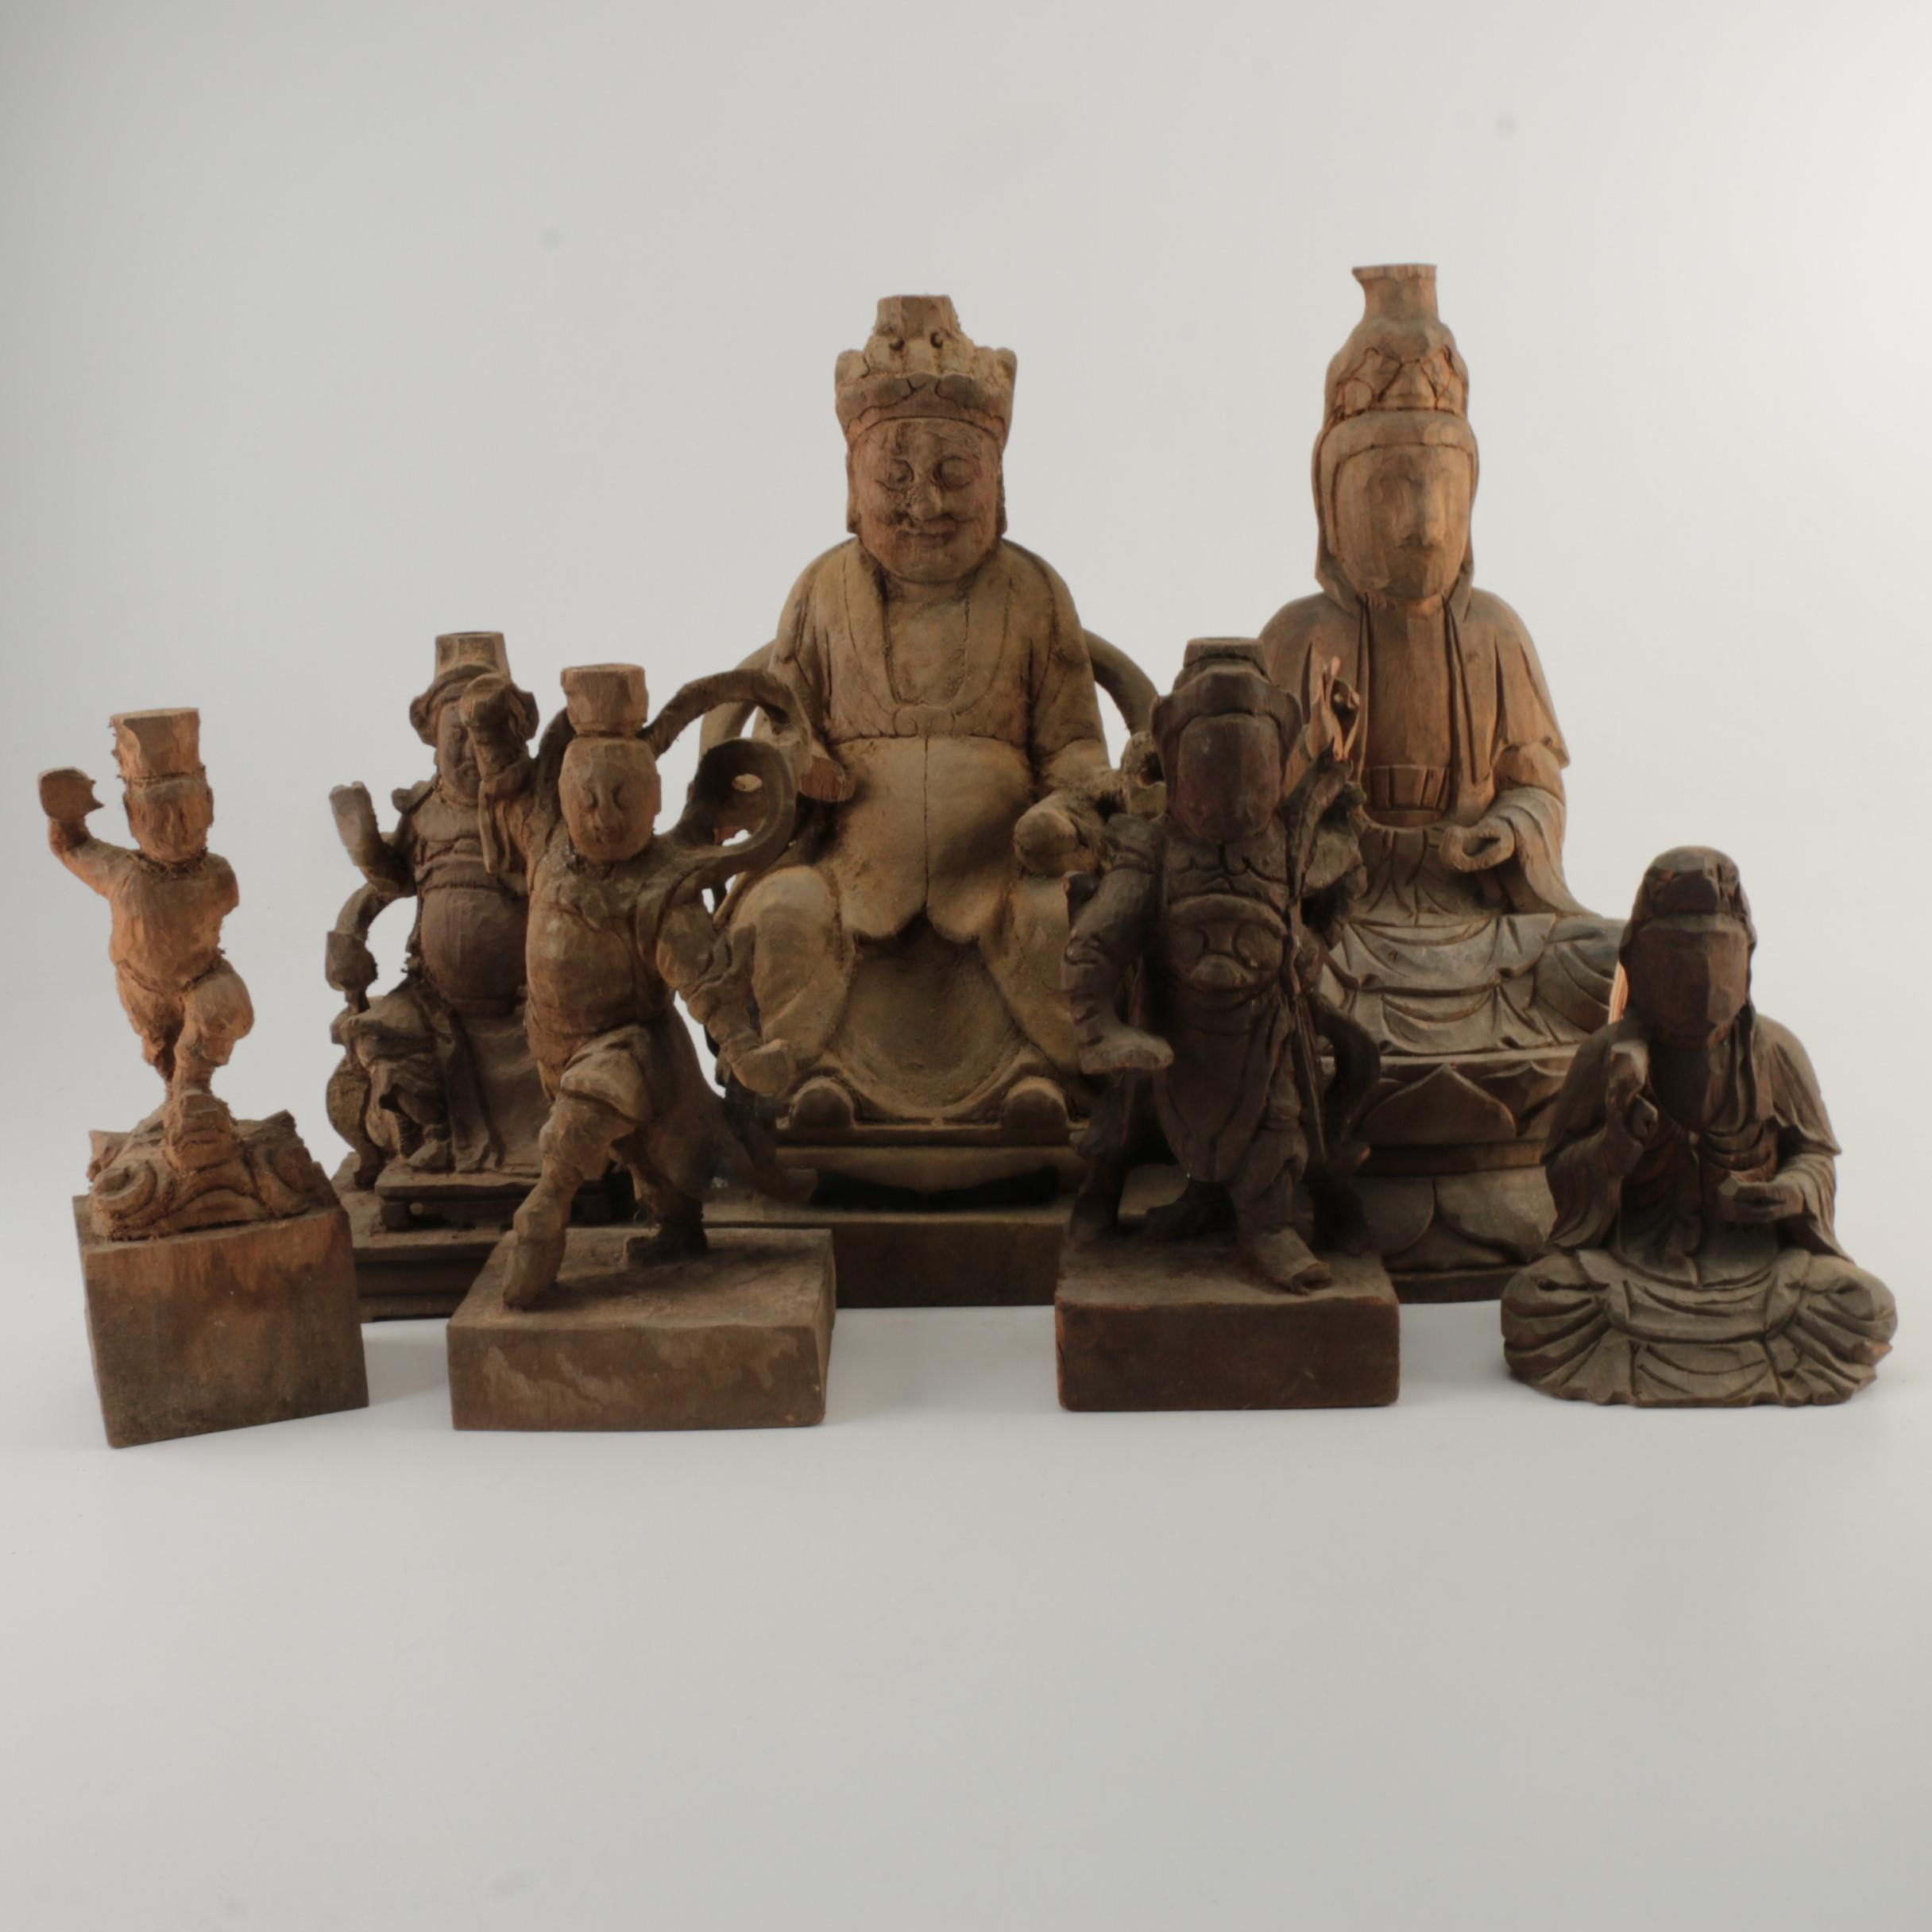 Antique and Vintage Chinese Wood Sculptures